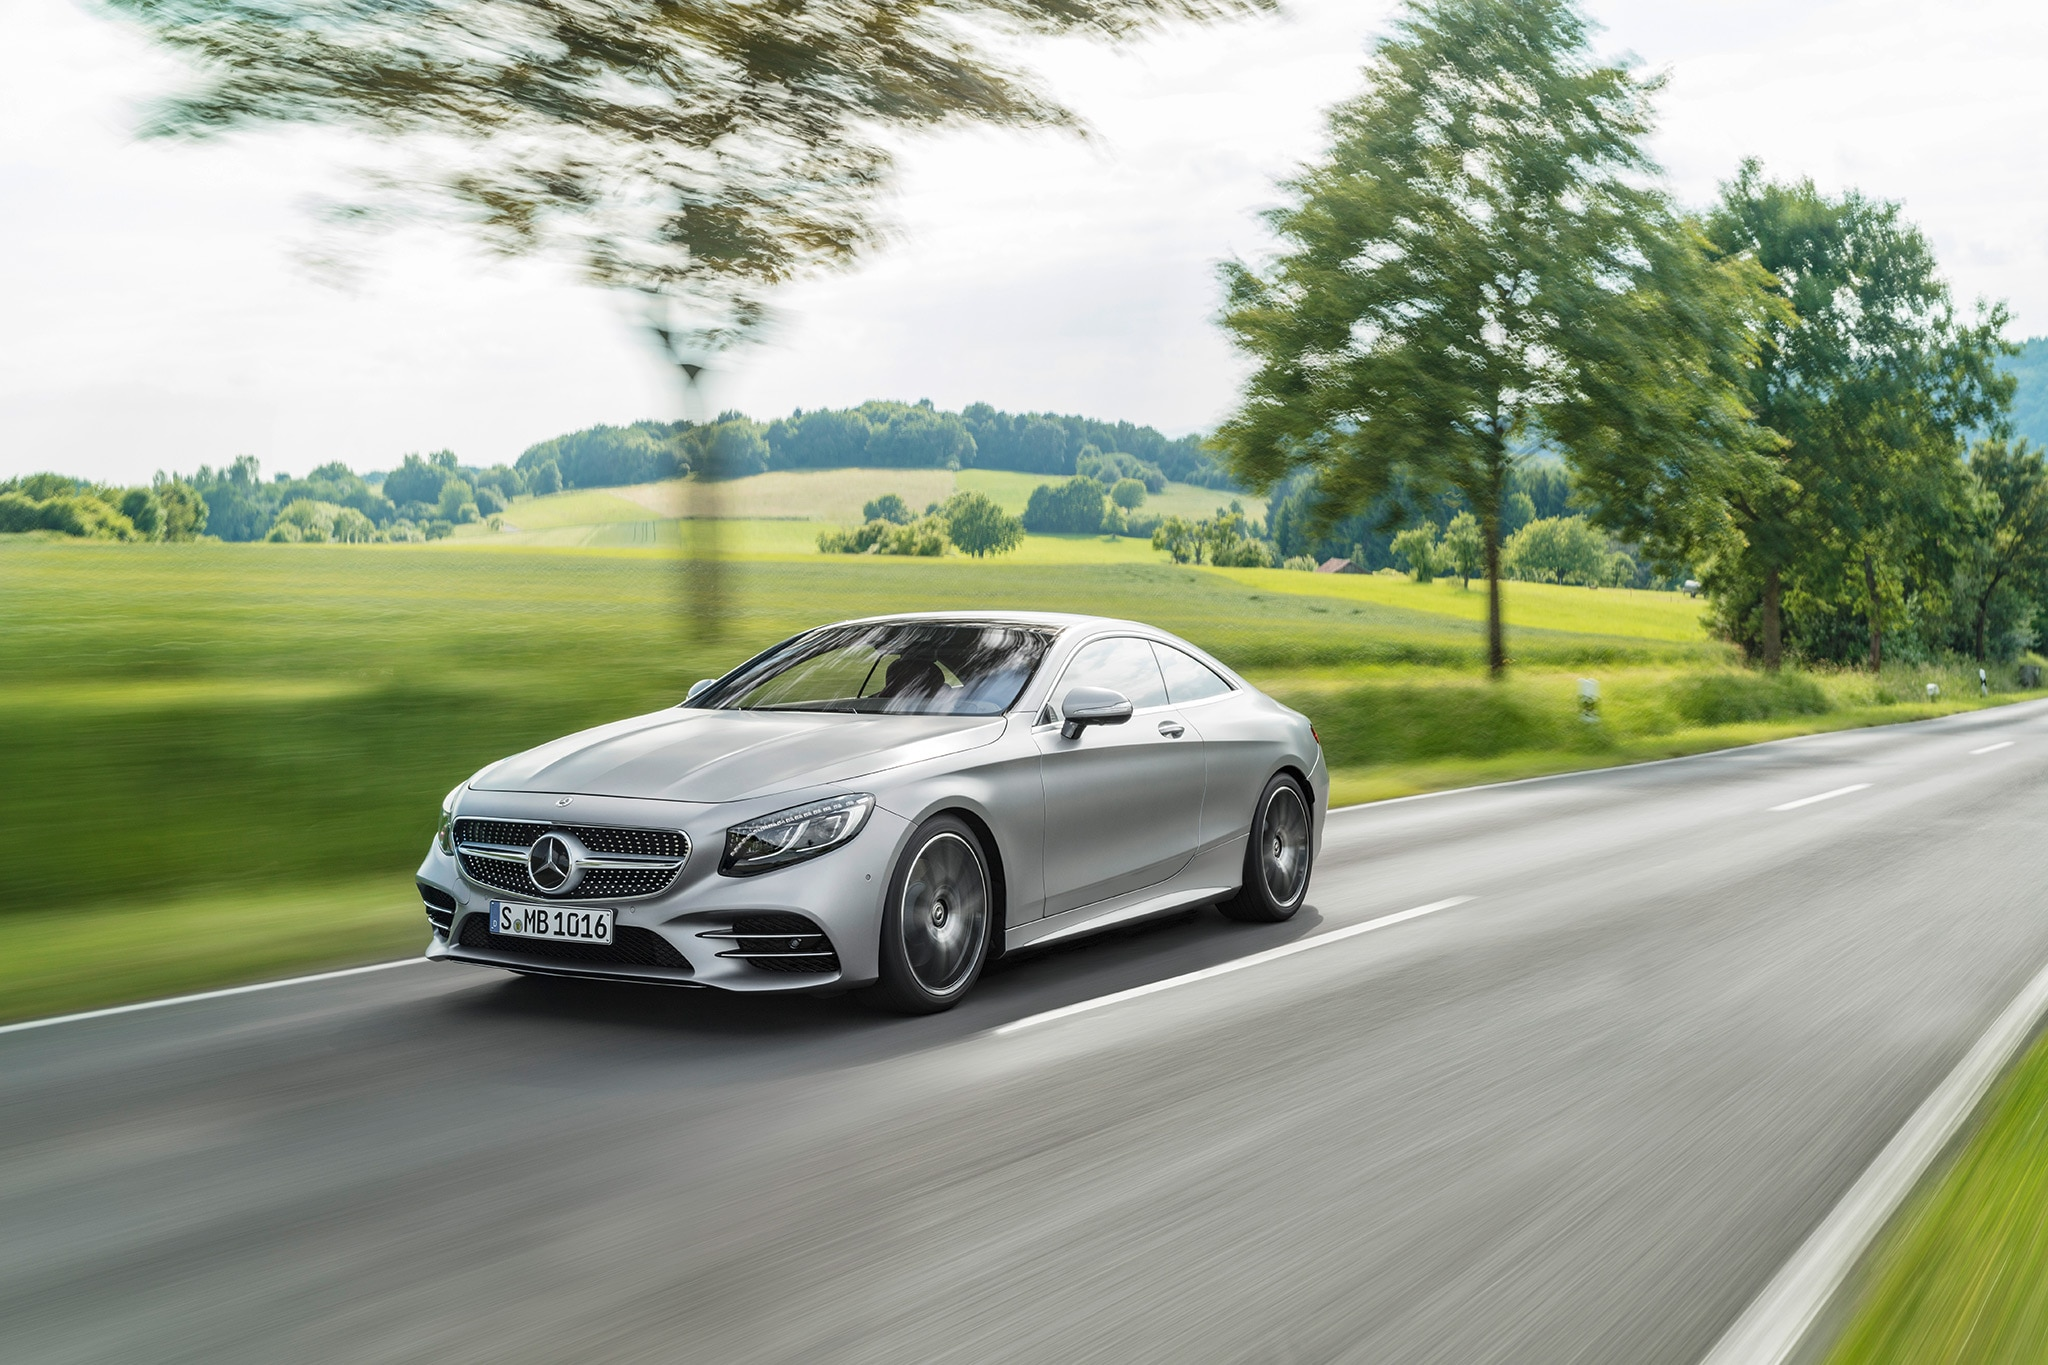 2018 mercedes benz s560. simple 2018 show more with 2018 mercedes benz s560